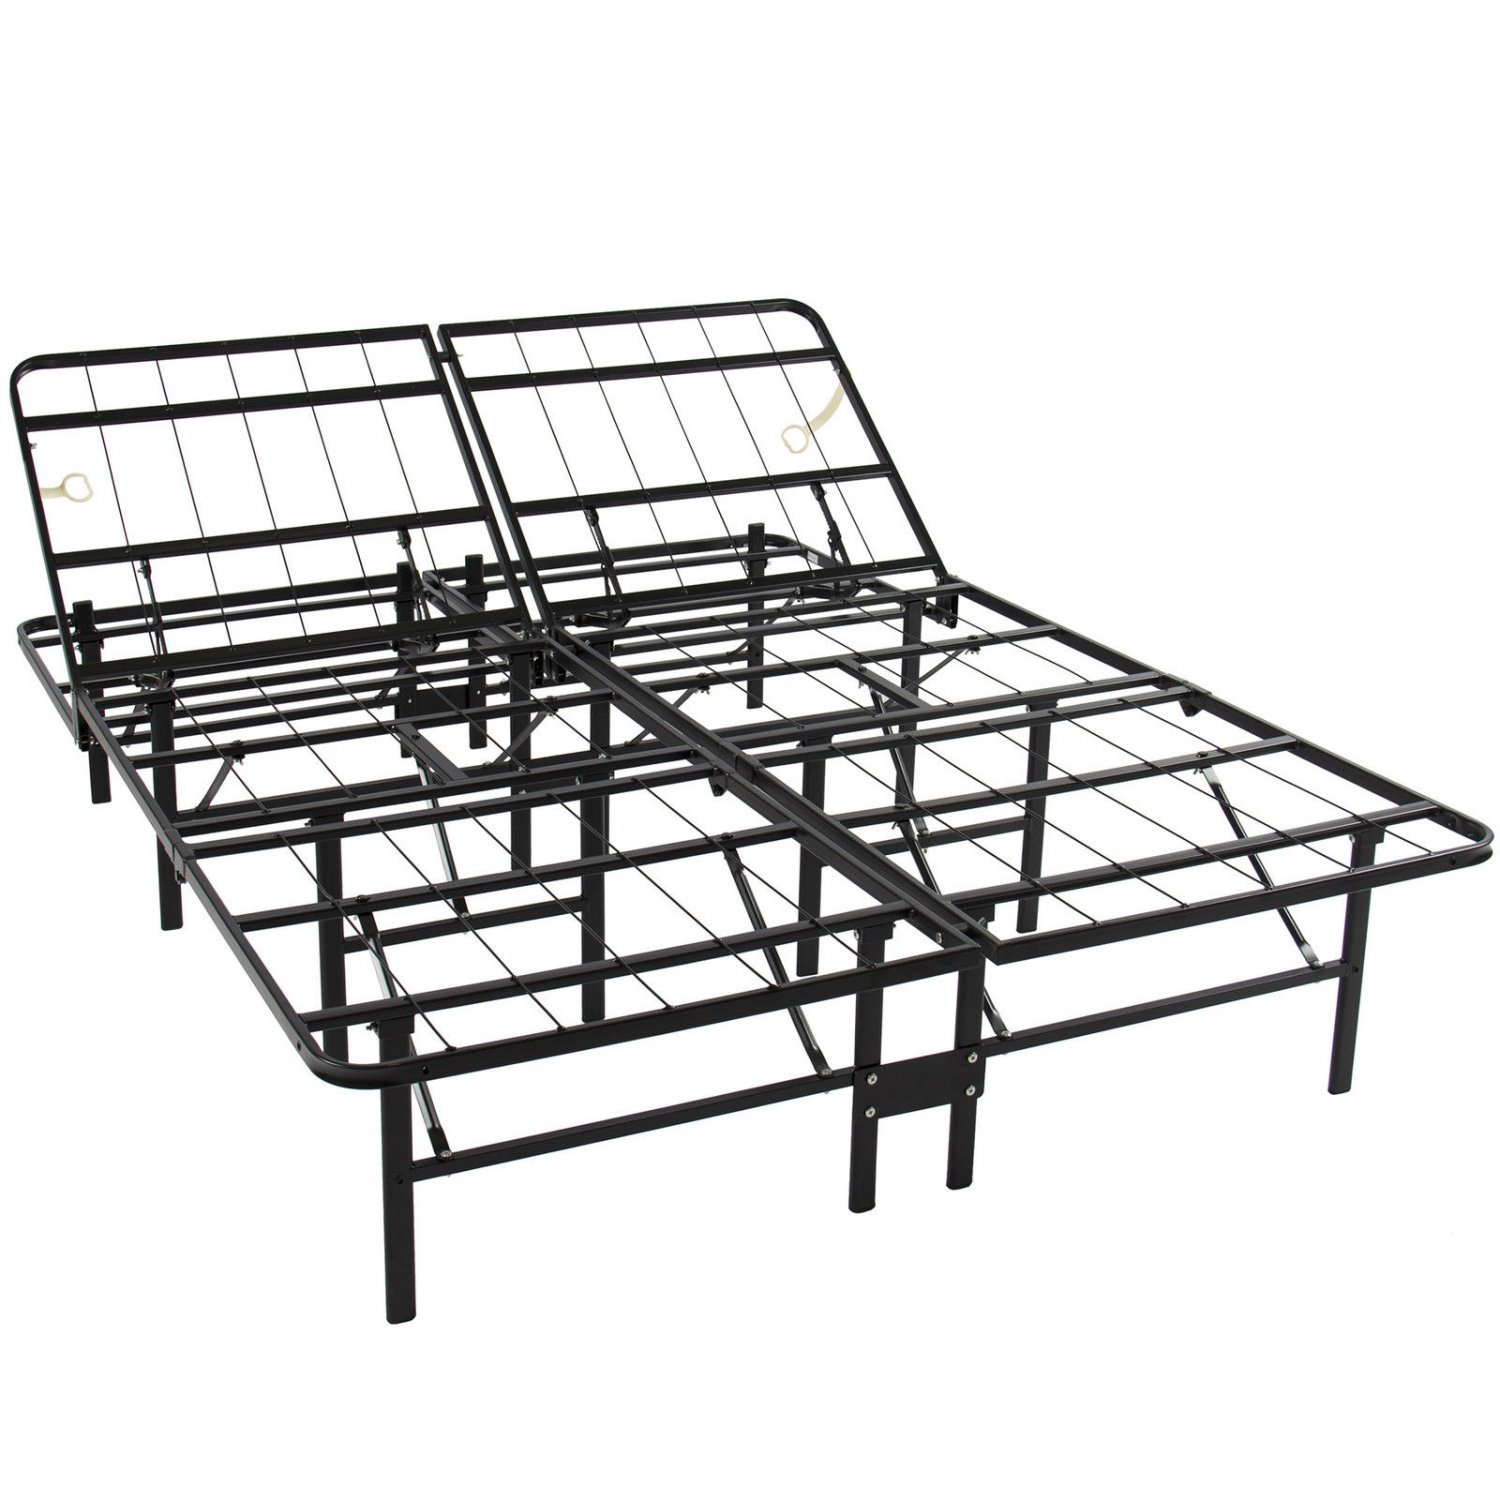 Sell Used Bed Frame